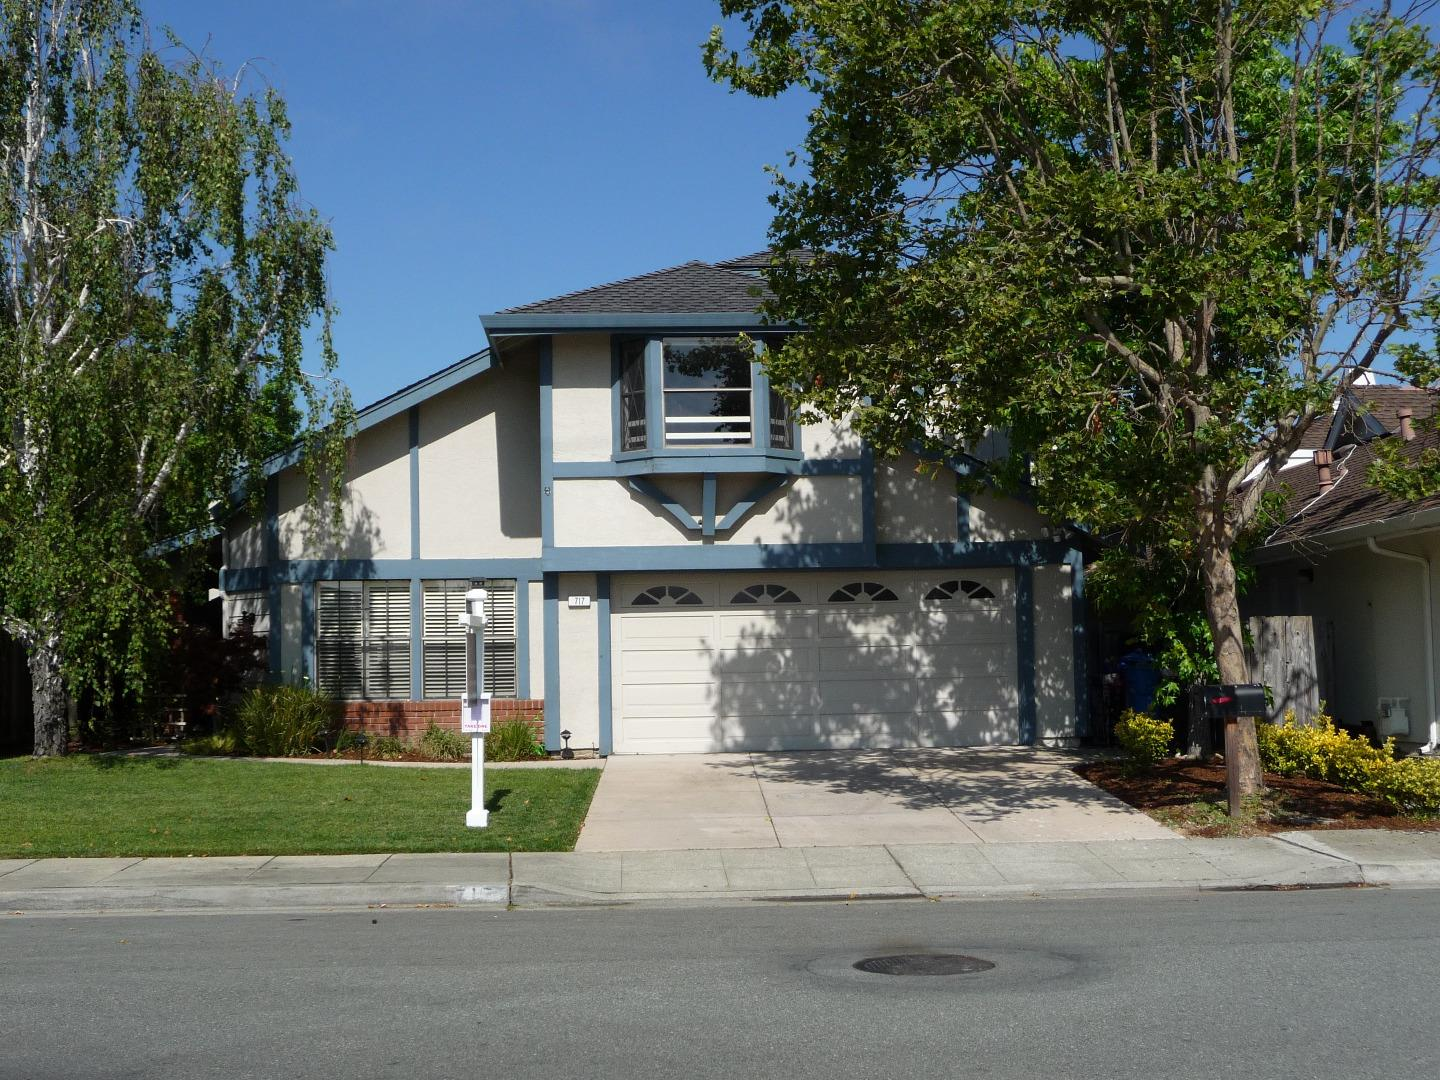 Single Family Home for Sale at 717 Baffin Street Foster City, California 94404 United States